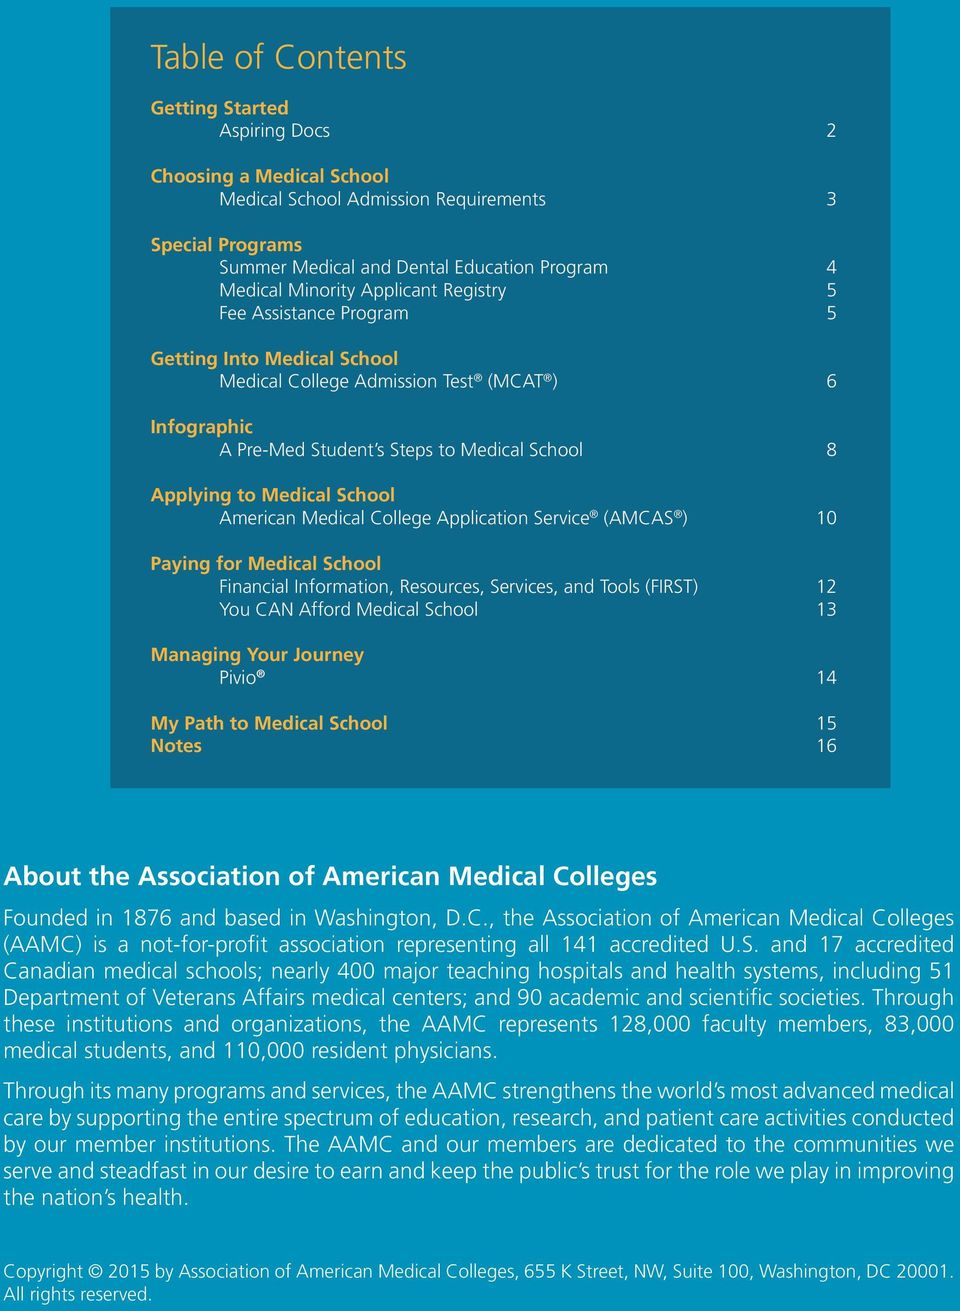 American Medical College Application Service (AMCAS ) 10 Paying for Medical School Financial Information, Resources, Services, and Tools (FIRST) 12 You CAN Afford Medical School 13 Managing Your